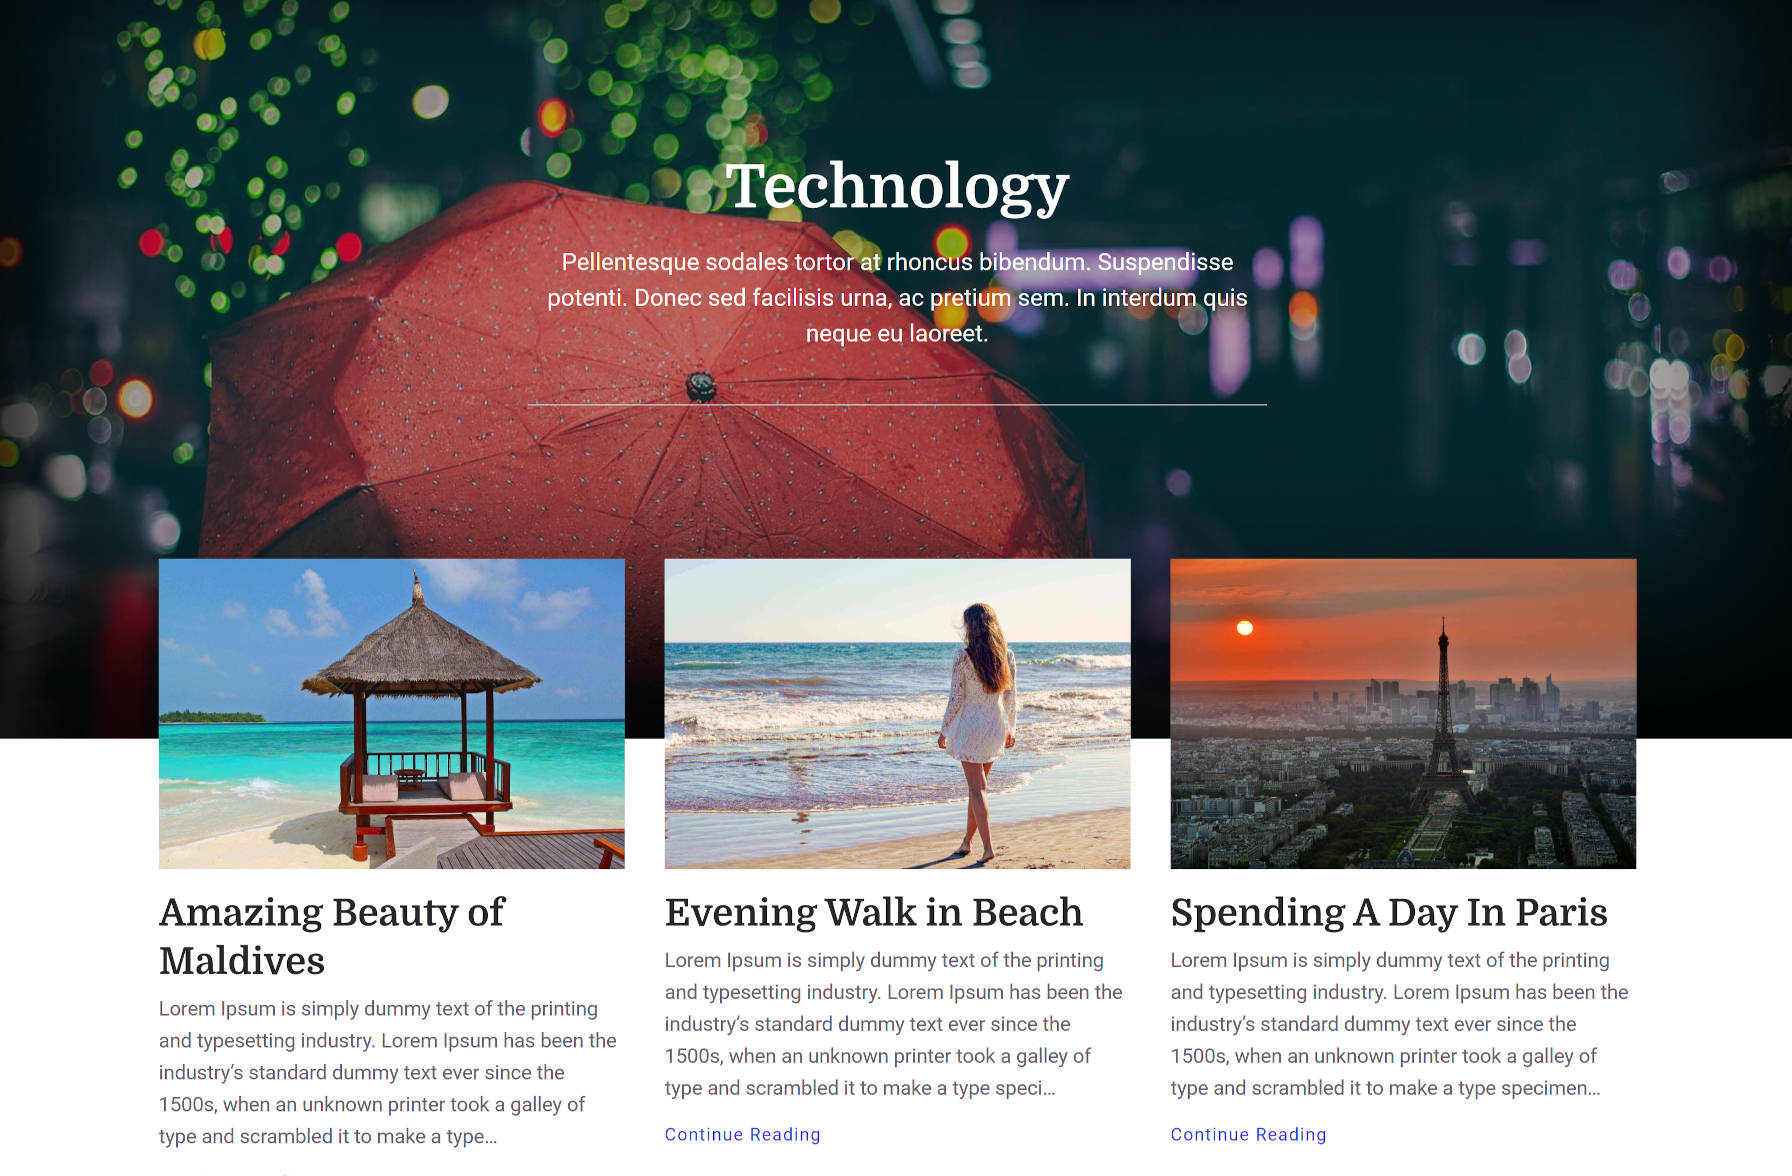 A lifestyle-type design with cover/hero area followed by grid-style posts.